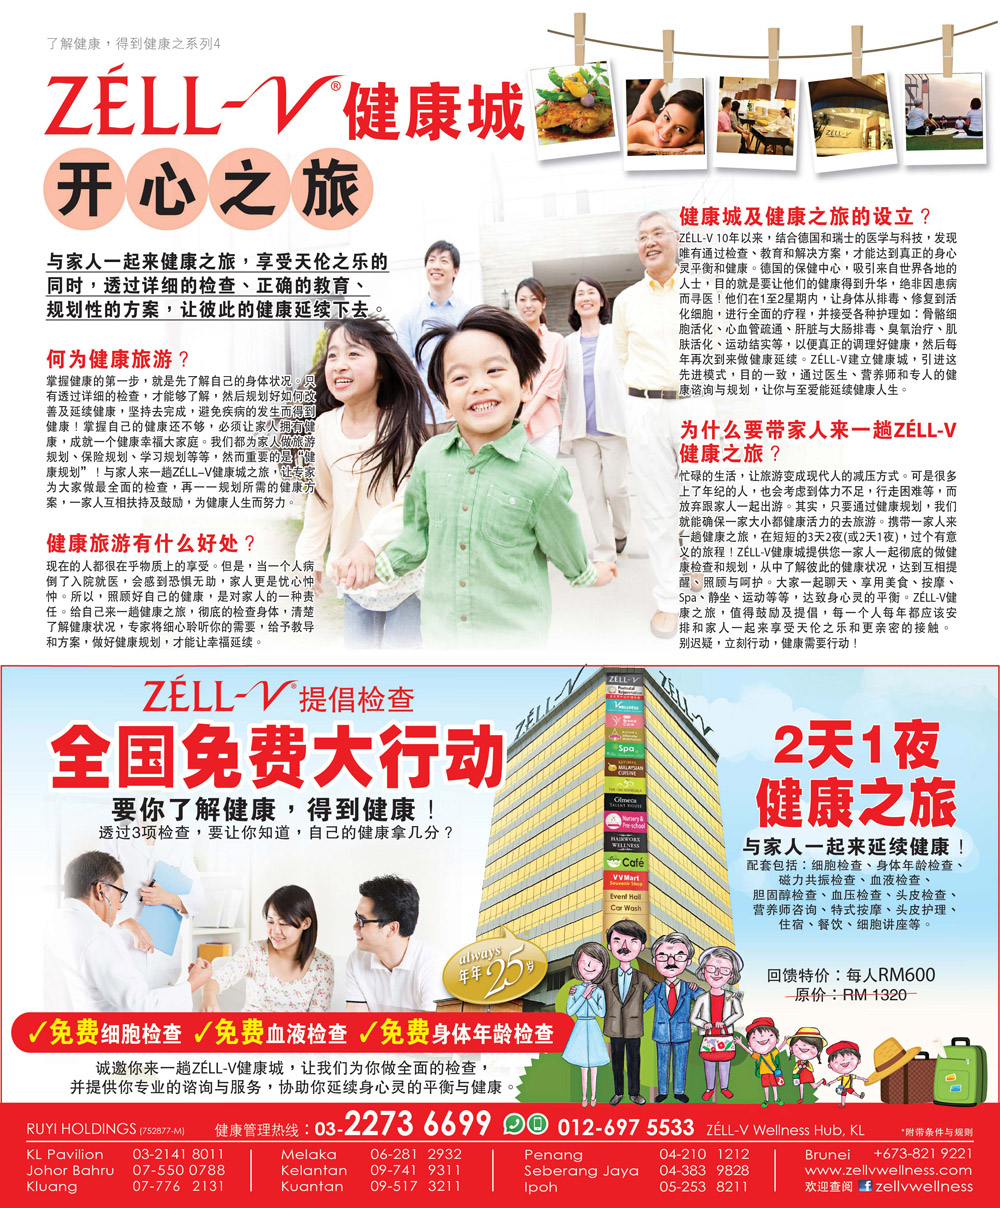 Zell-V Wellness Hub @ Sin Chew (April' 17)